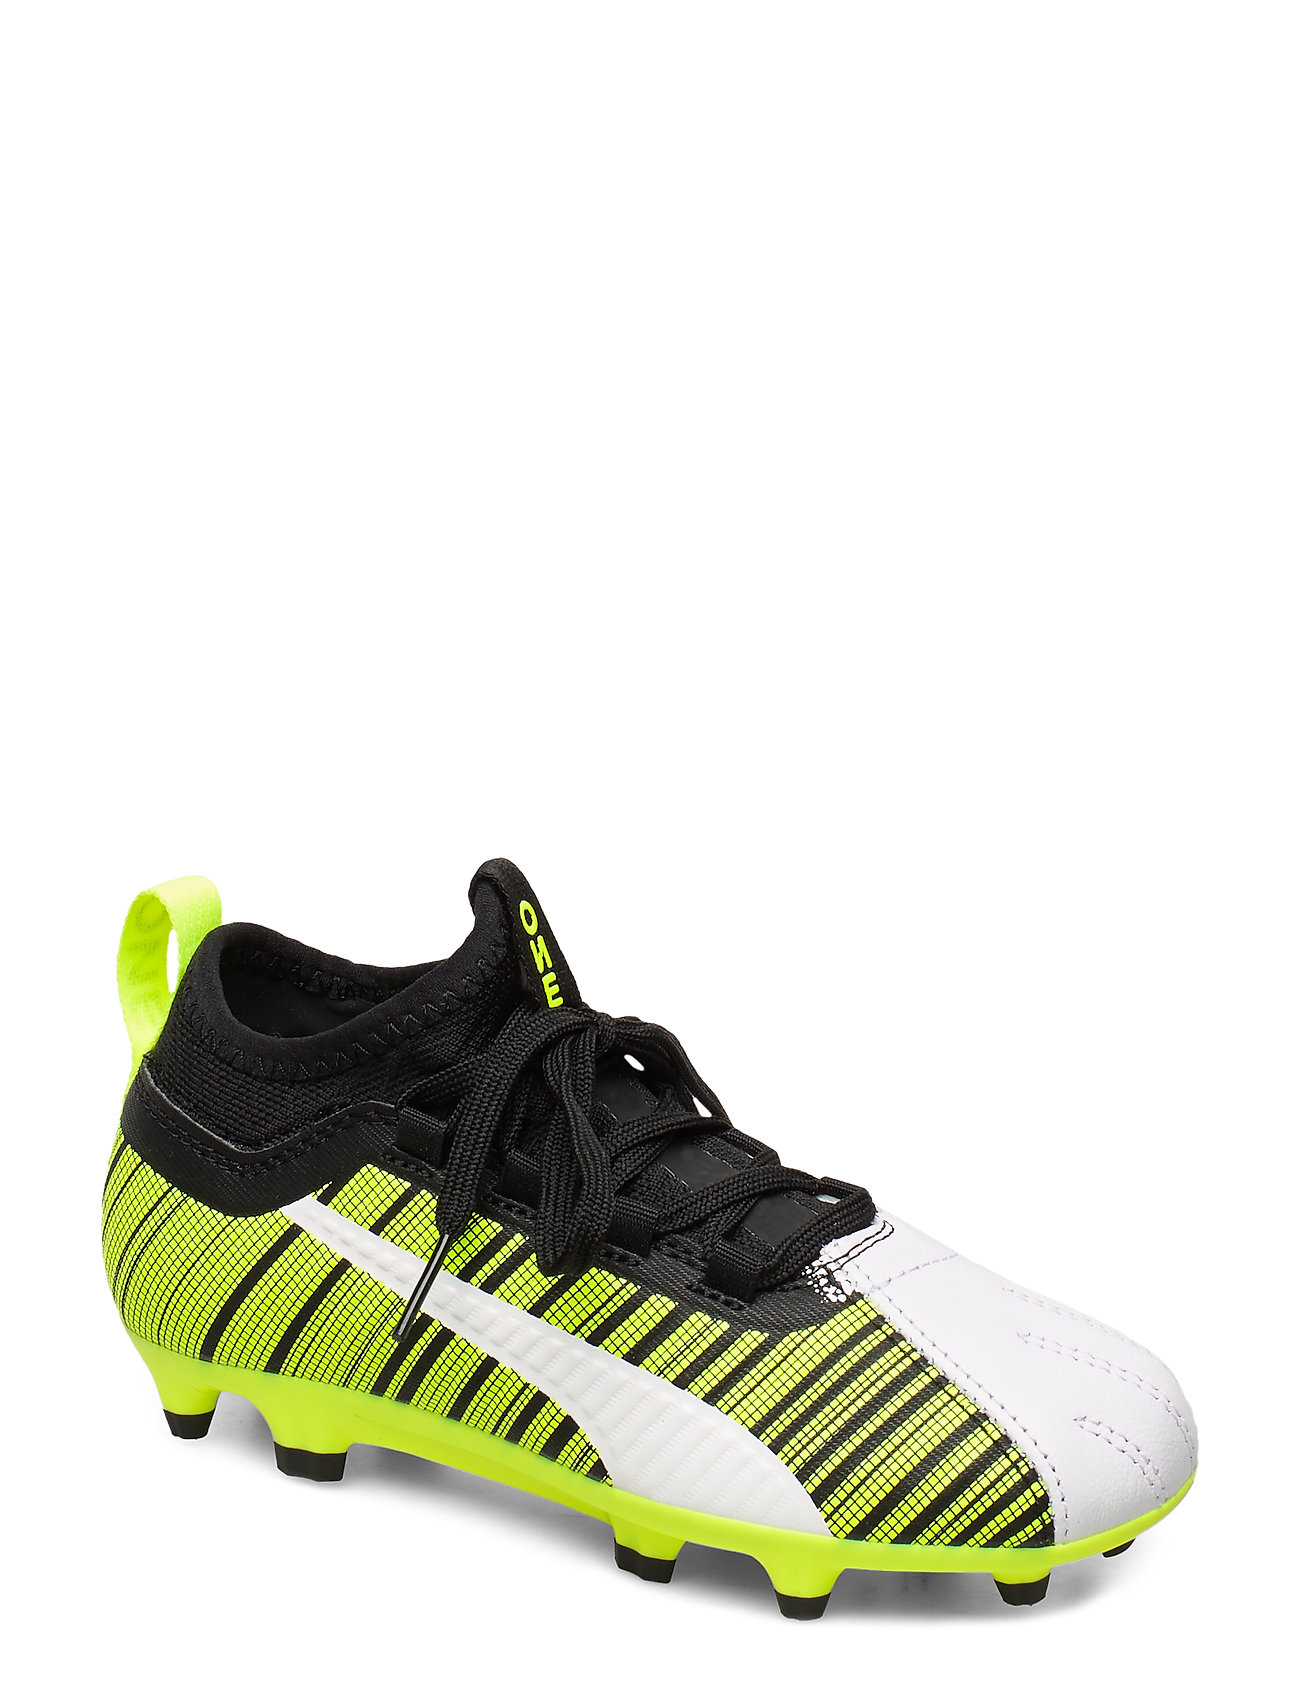 PUMA PUMA ONE 5.3 FG/AG Jr - PUMA WHITE-PUMA BLACK-YELLOW ALERT